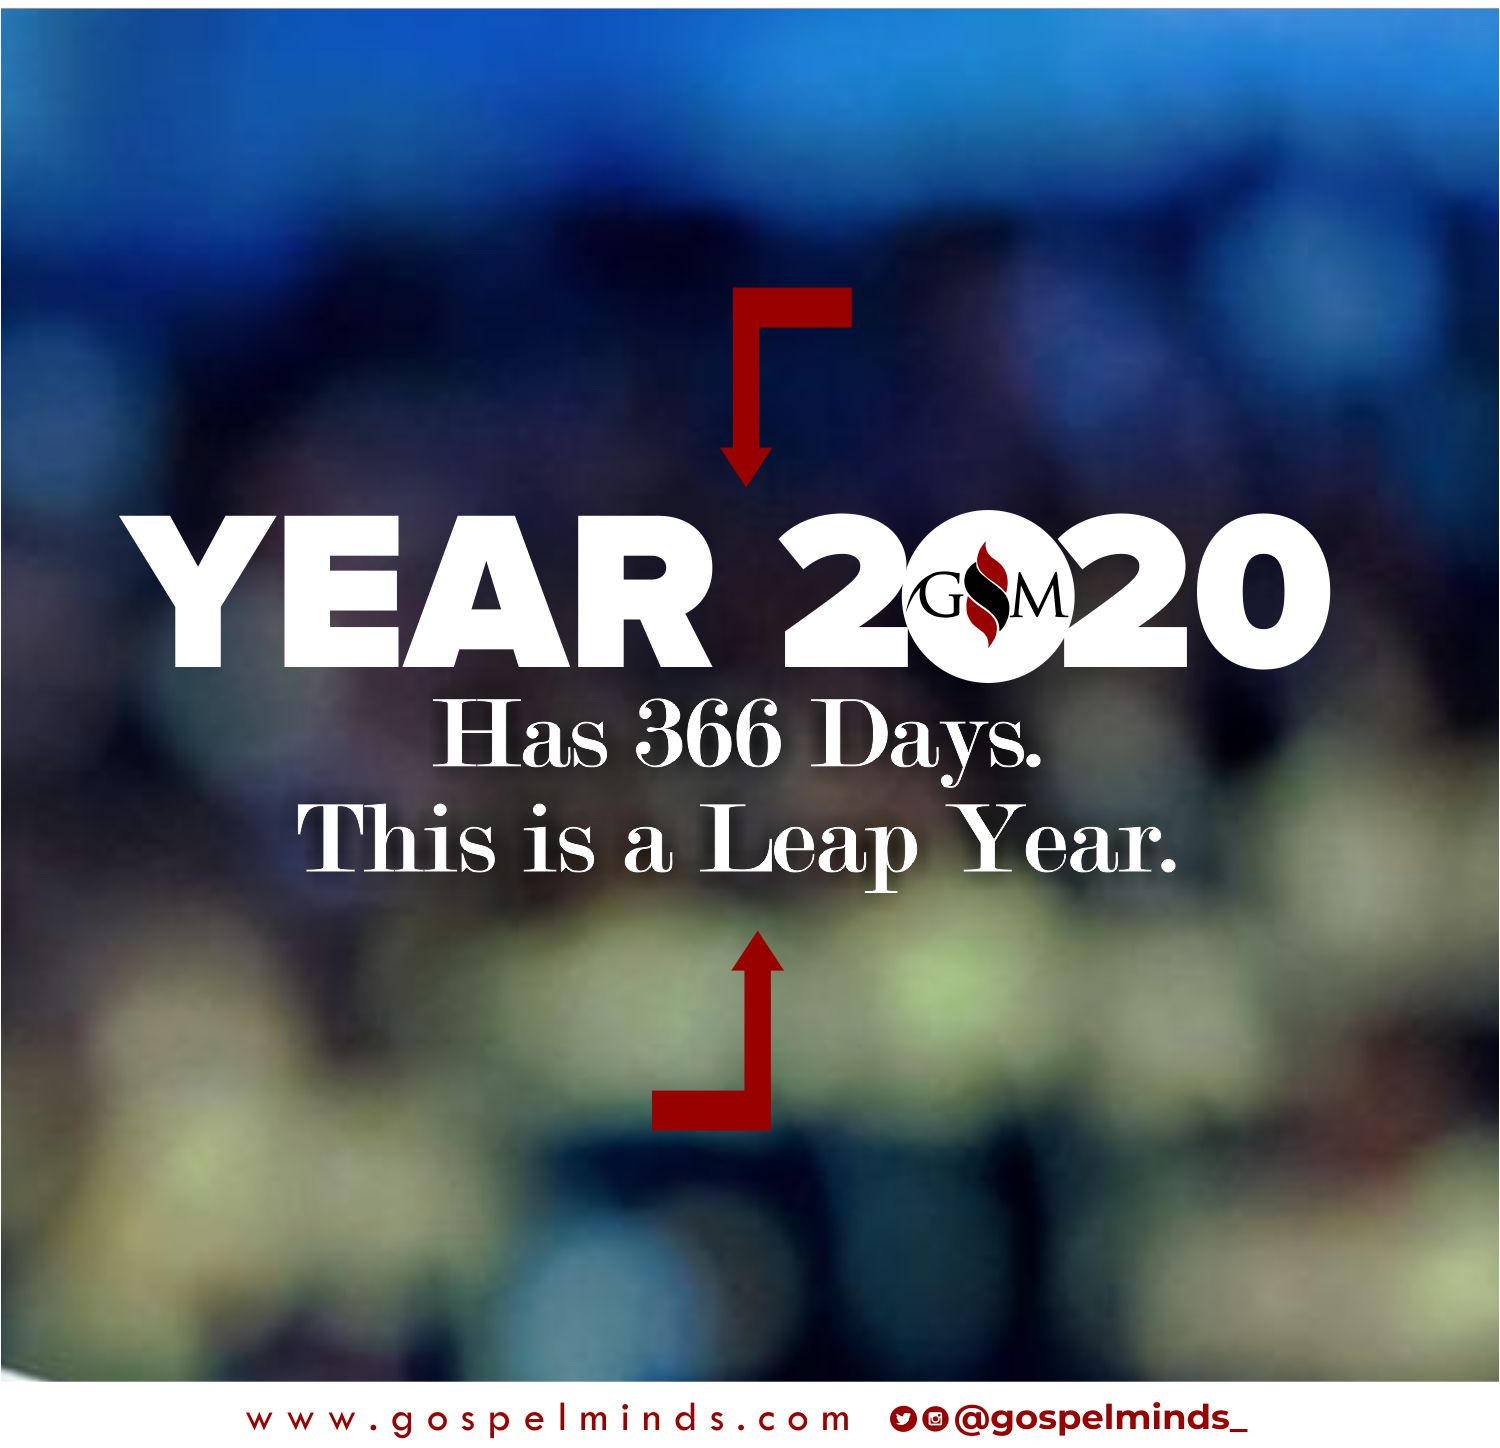 2020 has 366 days, This is a Leap Year